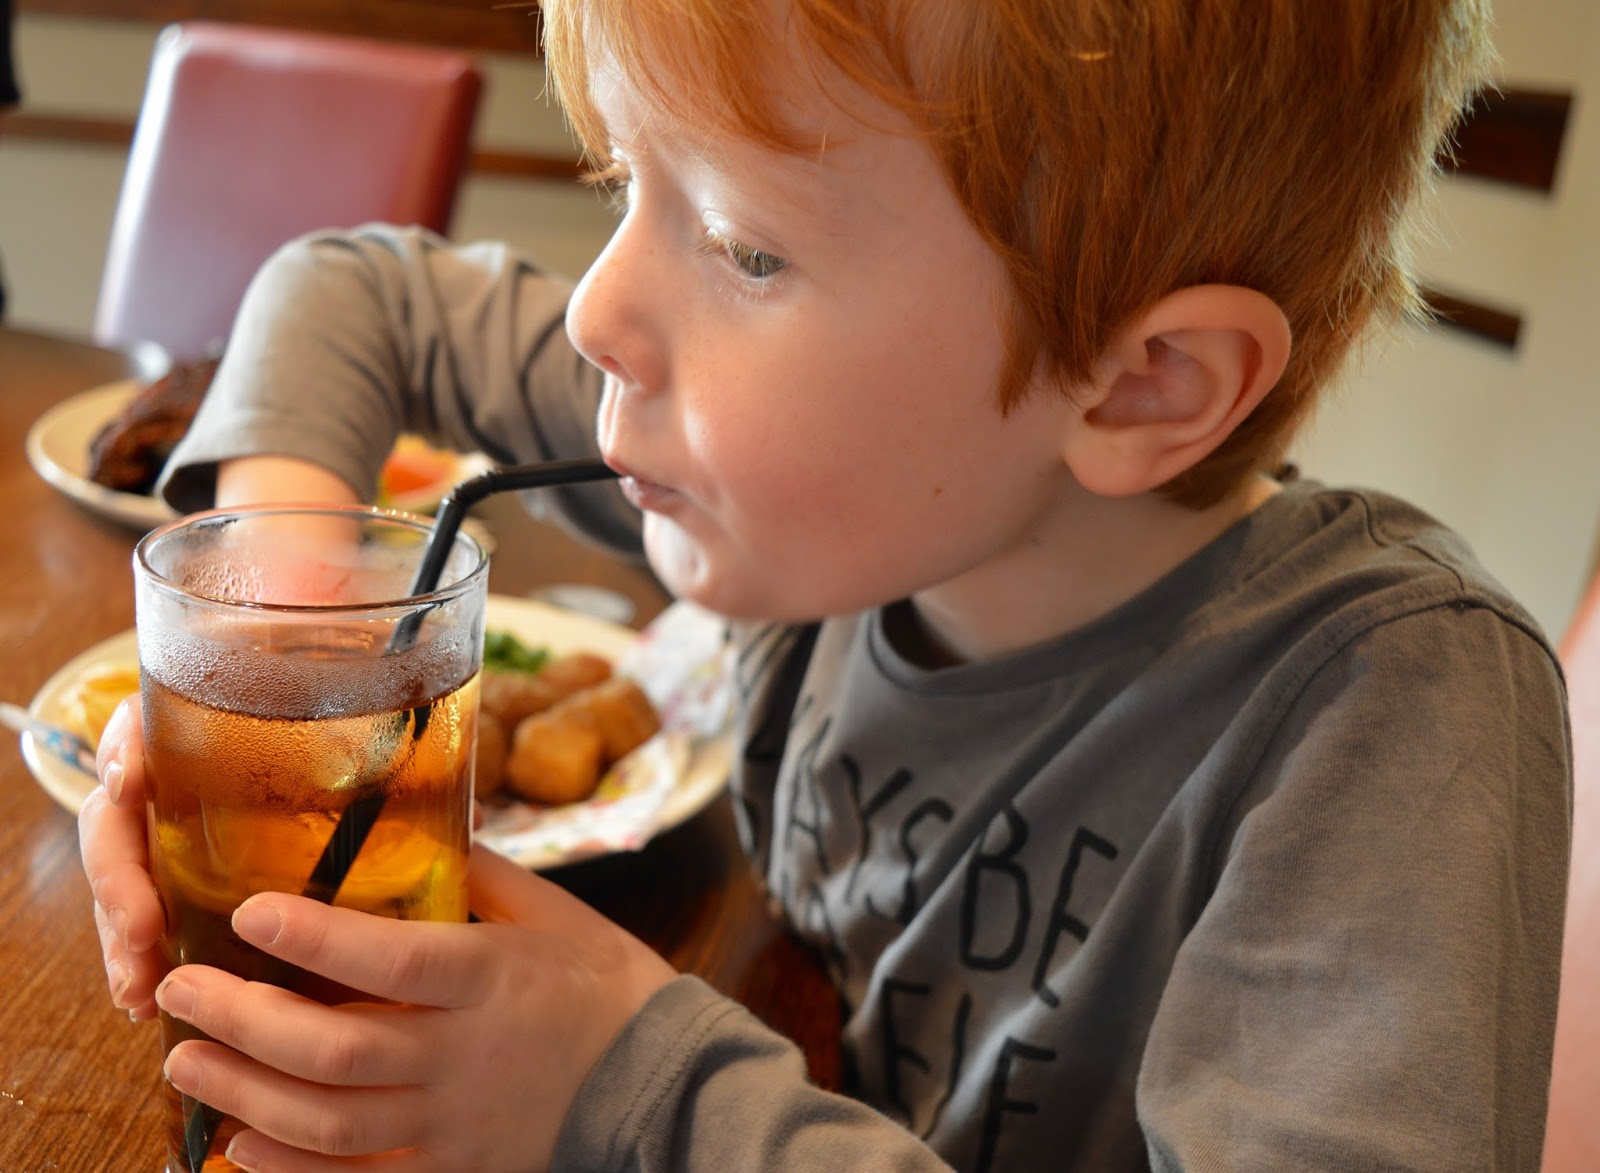 Derwent Crossing Brewers Fayre near intu Metrocentre | Play Area & Children's Menu Review